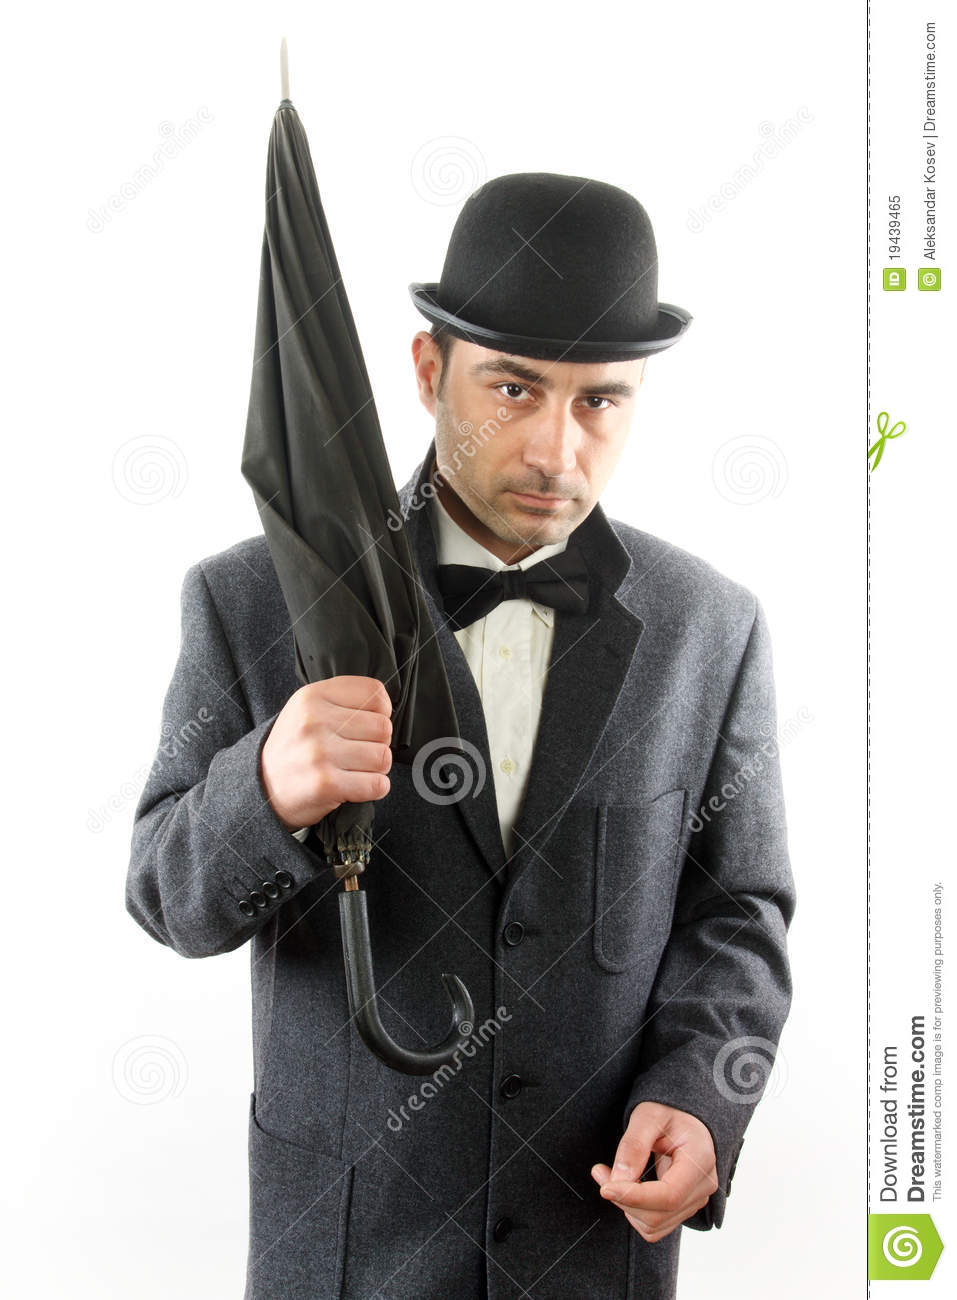 Man With Bowler Hat And An Umbrella Royalty Free Stock